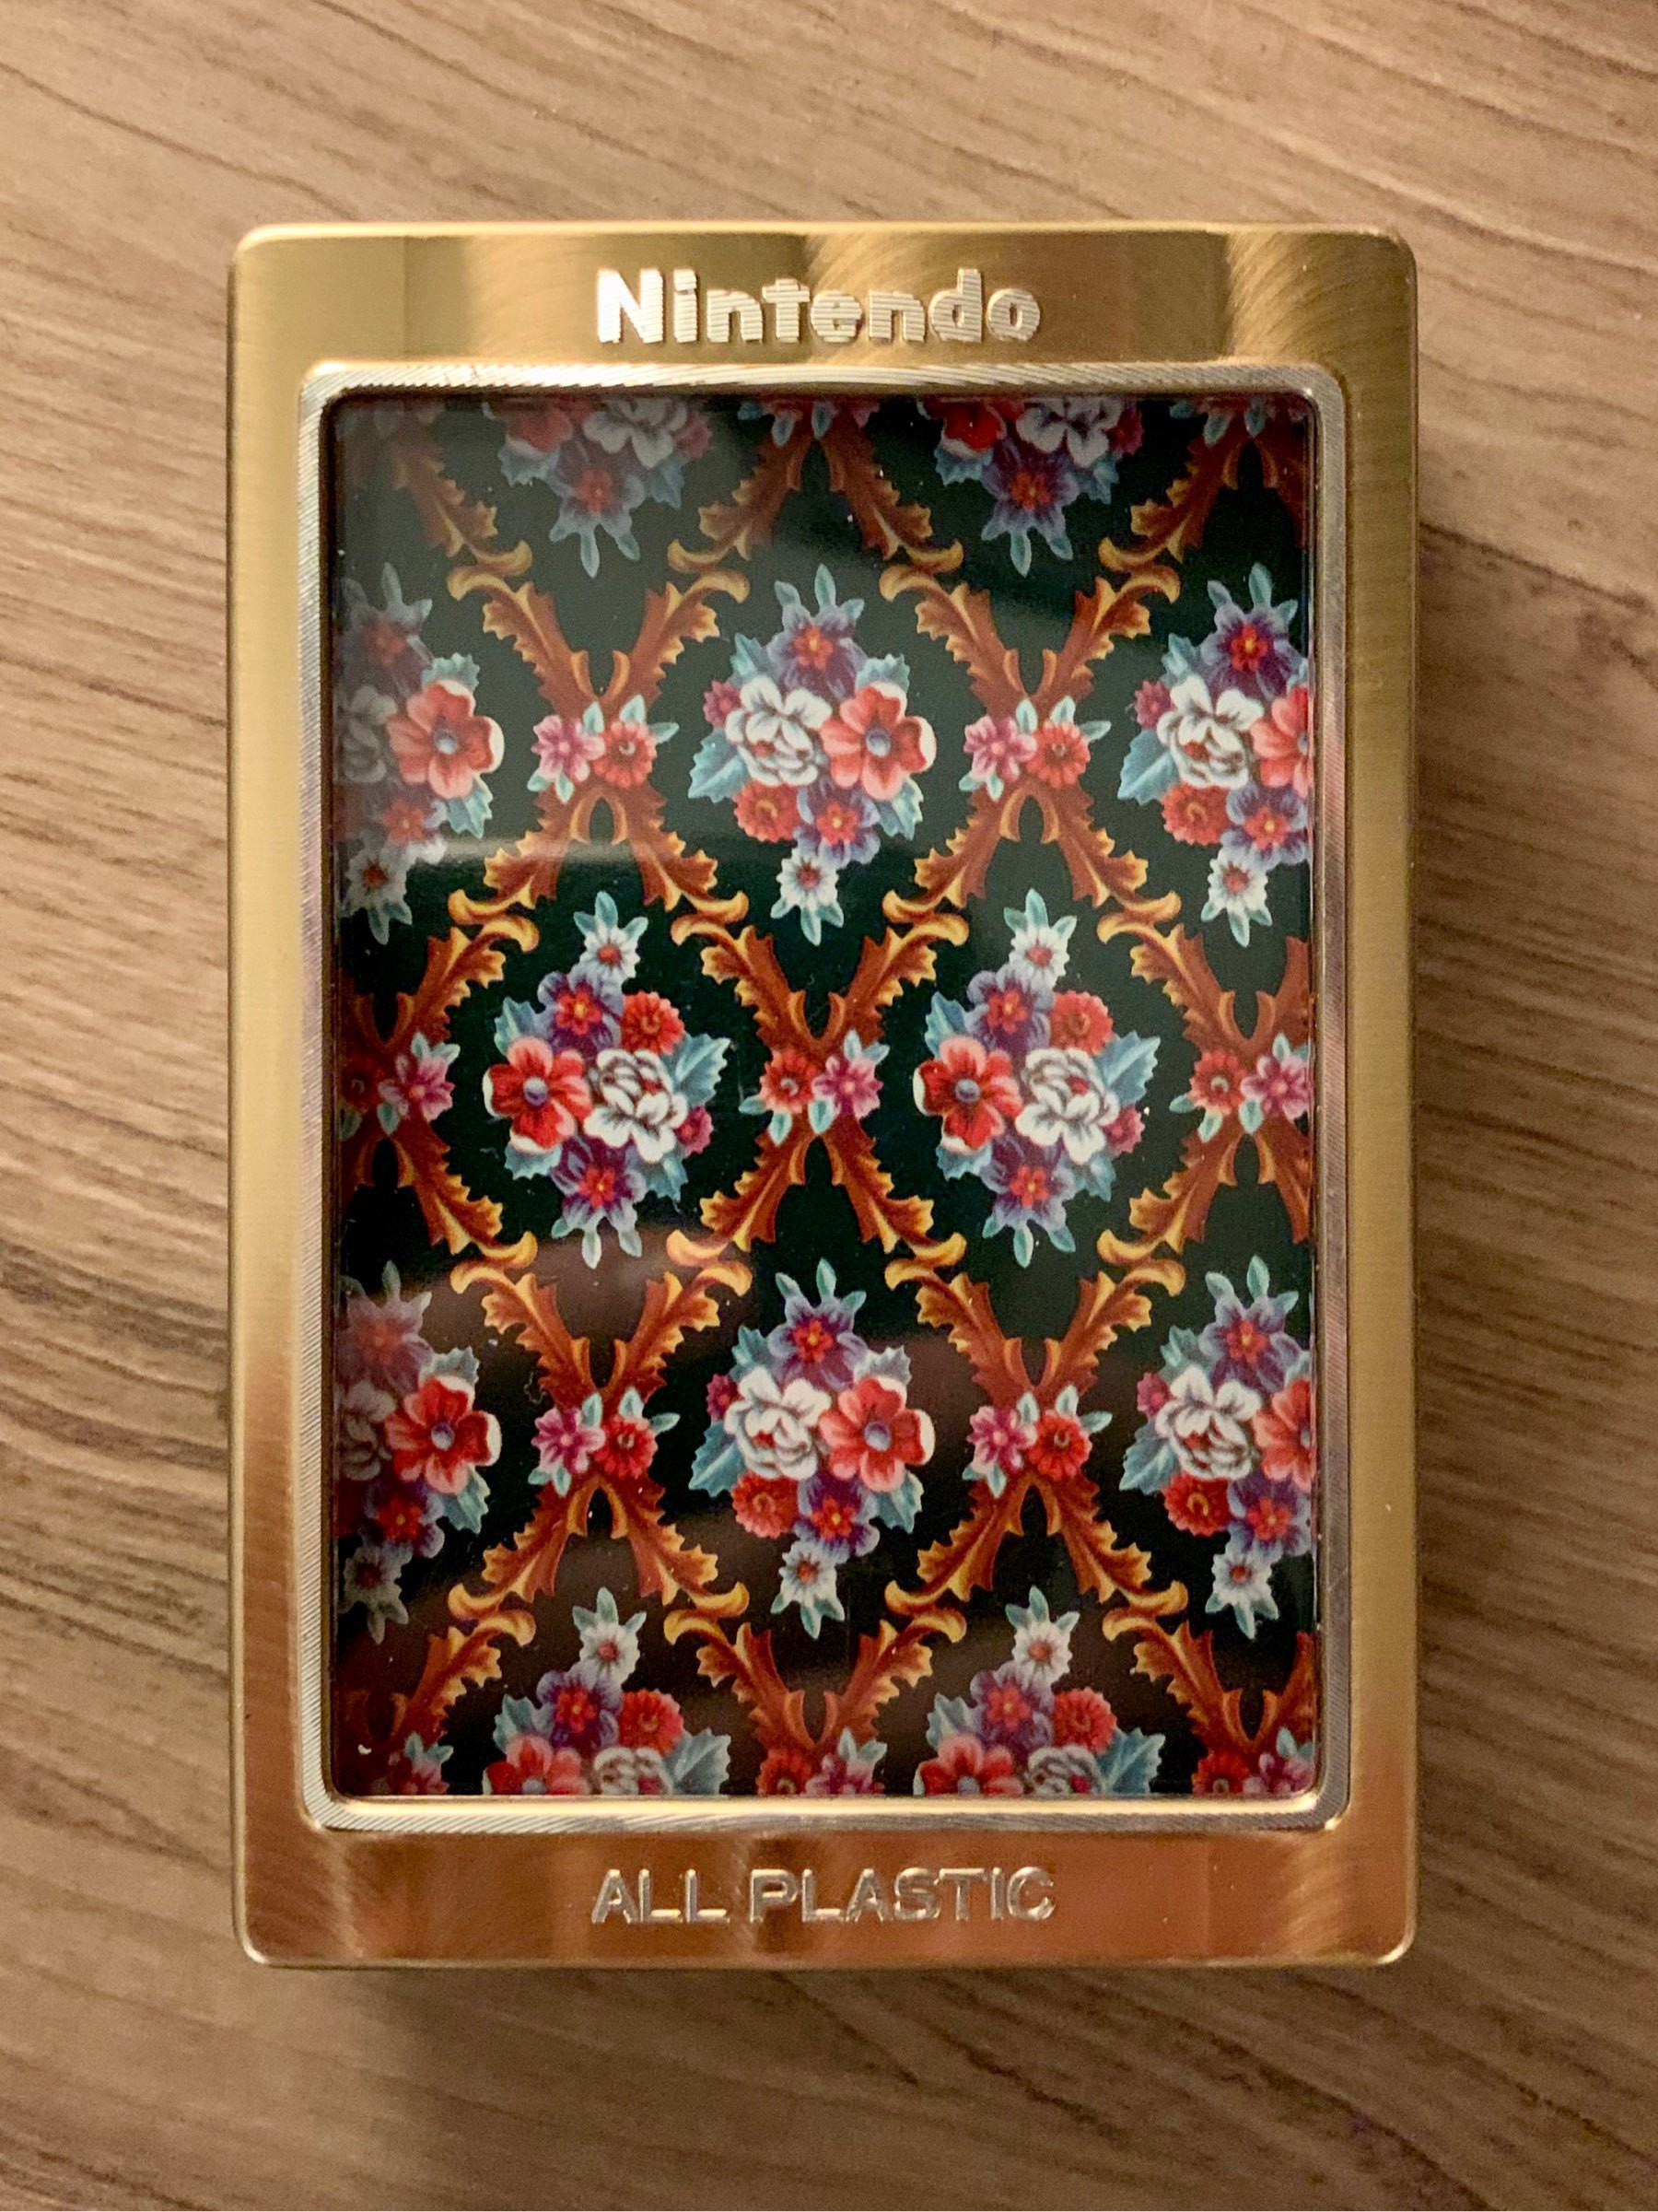 Playing cards in a Nintendo-branded plastic box